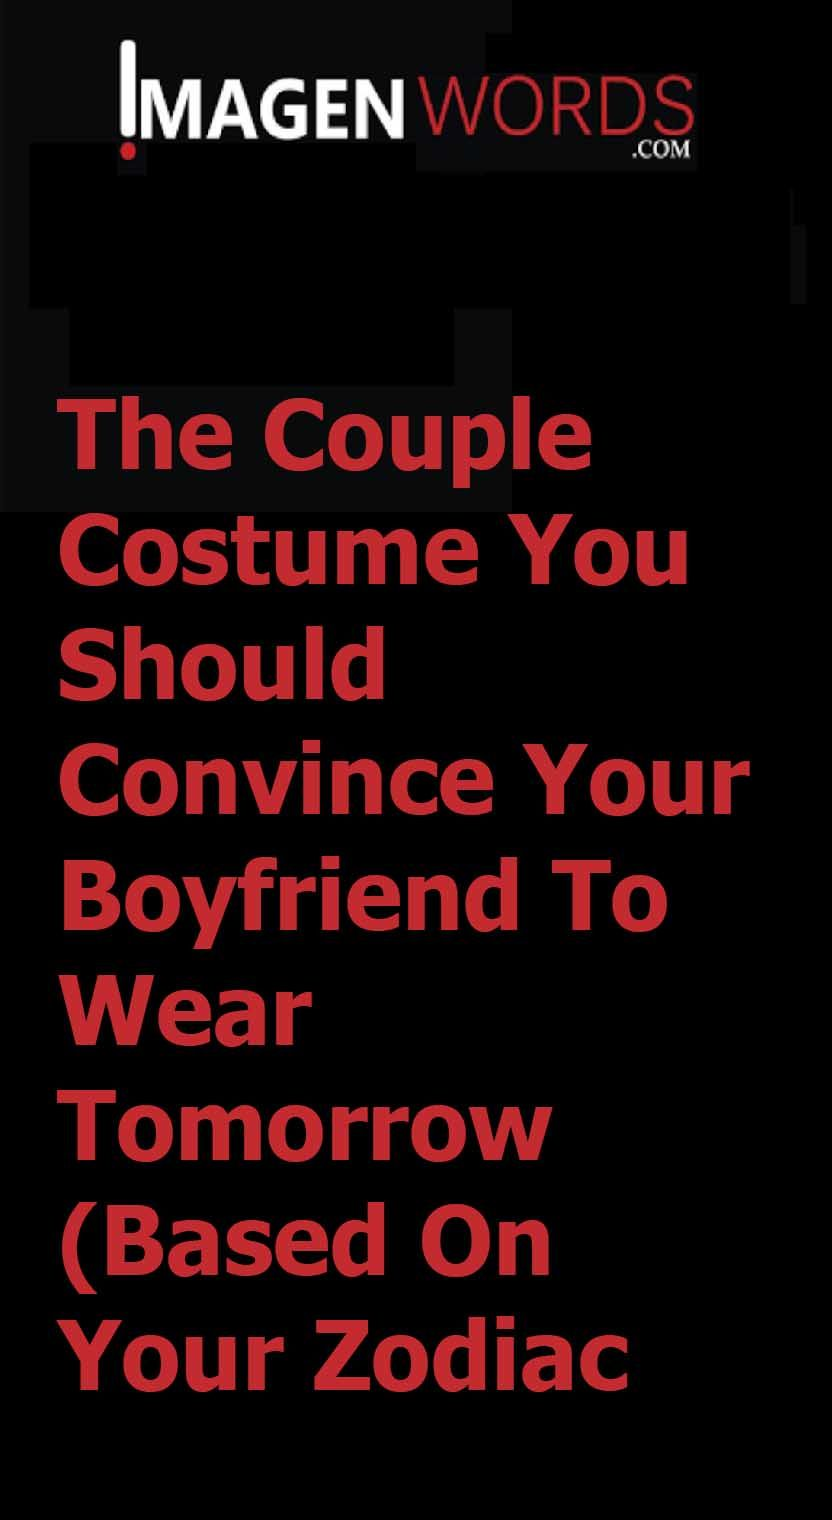 The Couple Costume You Should Convince Your Boyfriend To Wear